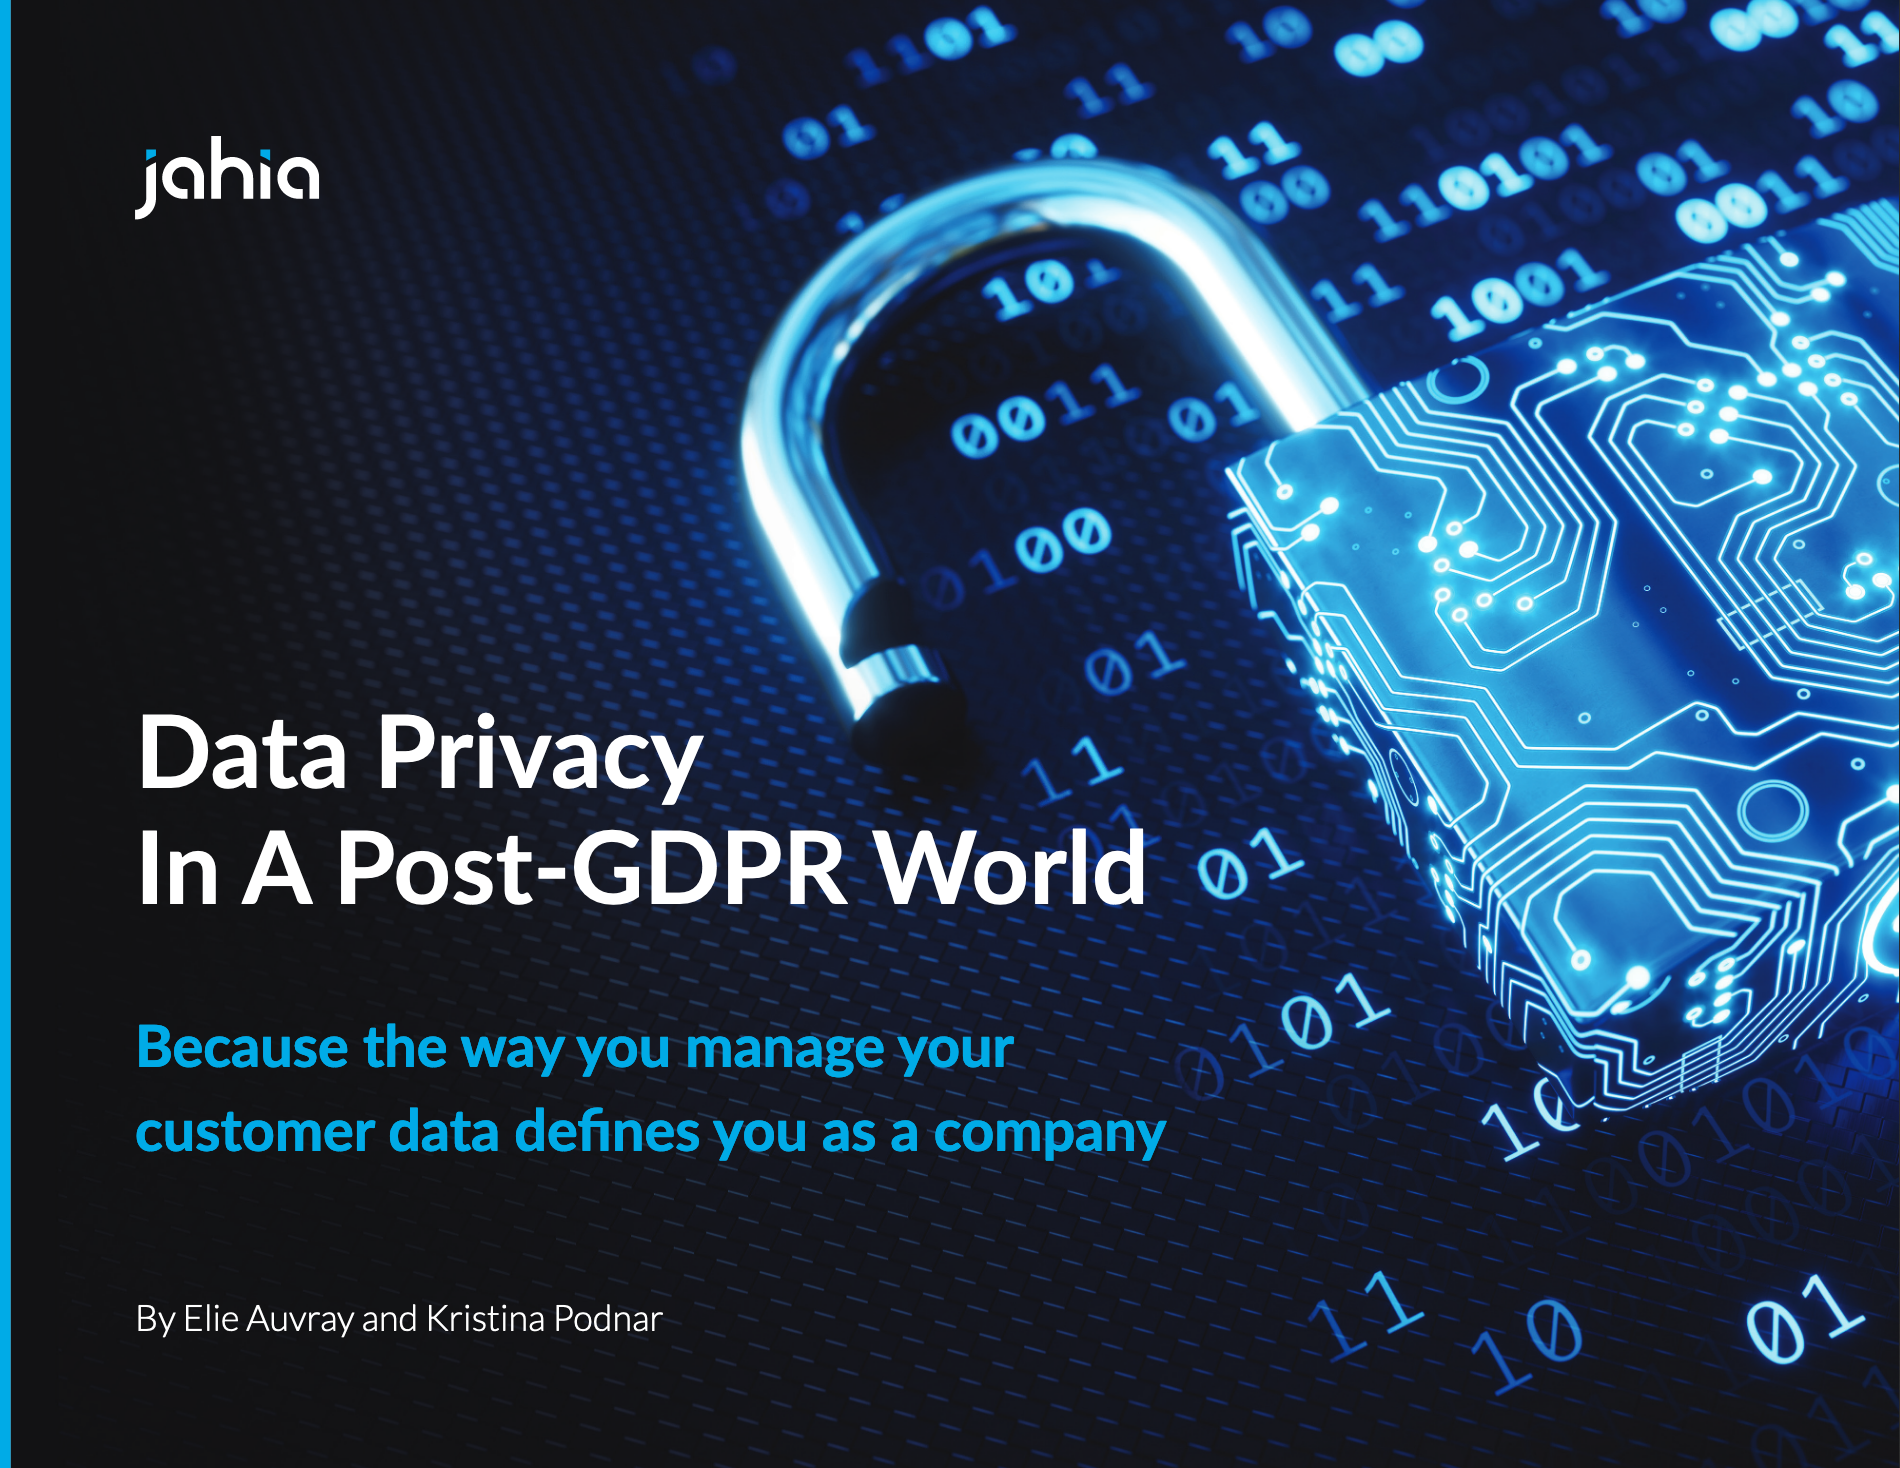 Data Privacy In A Post-GDPR World